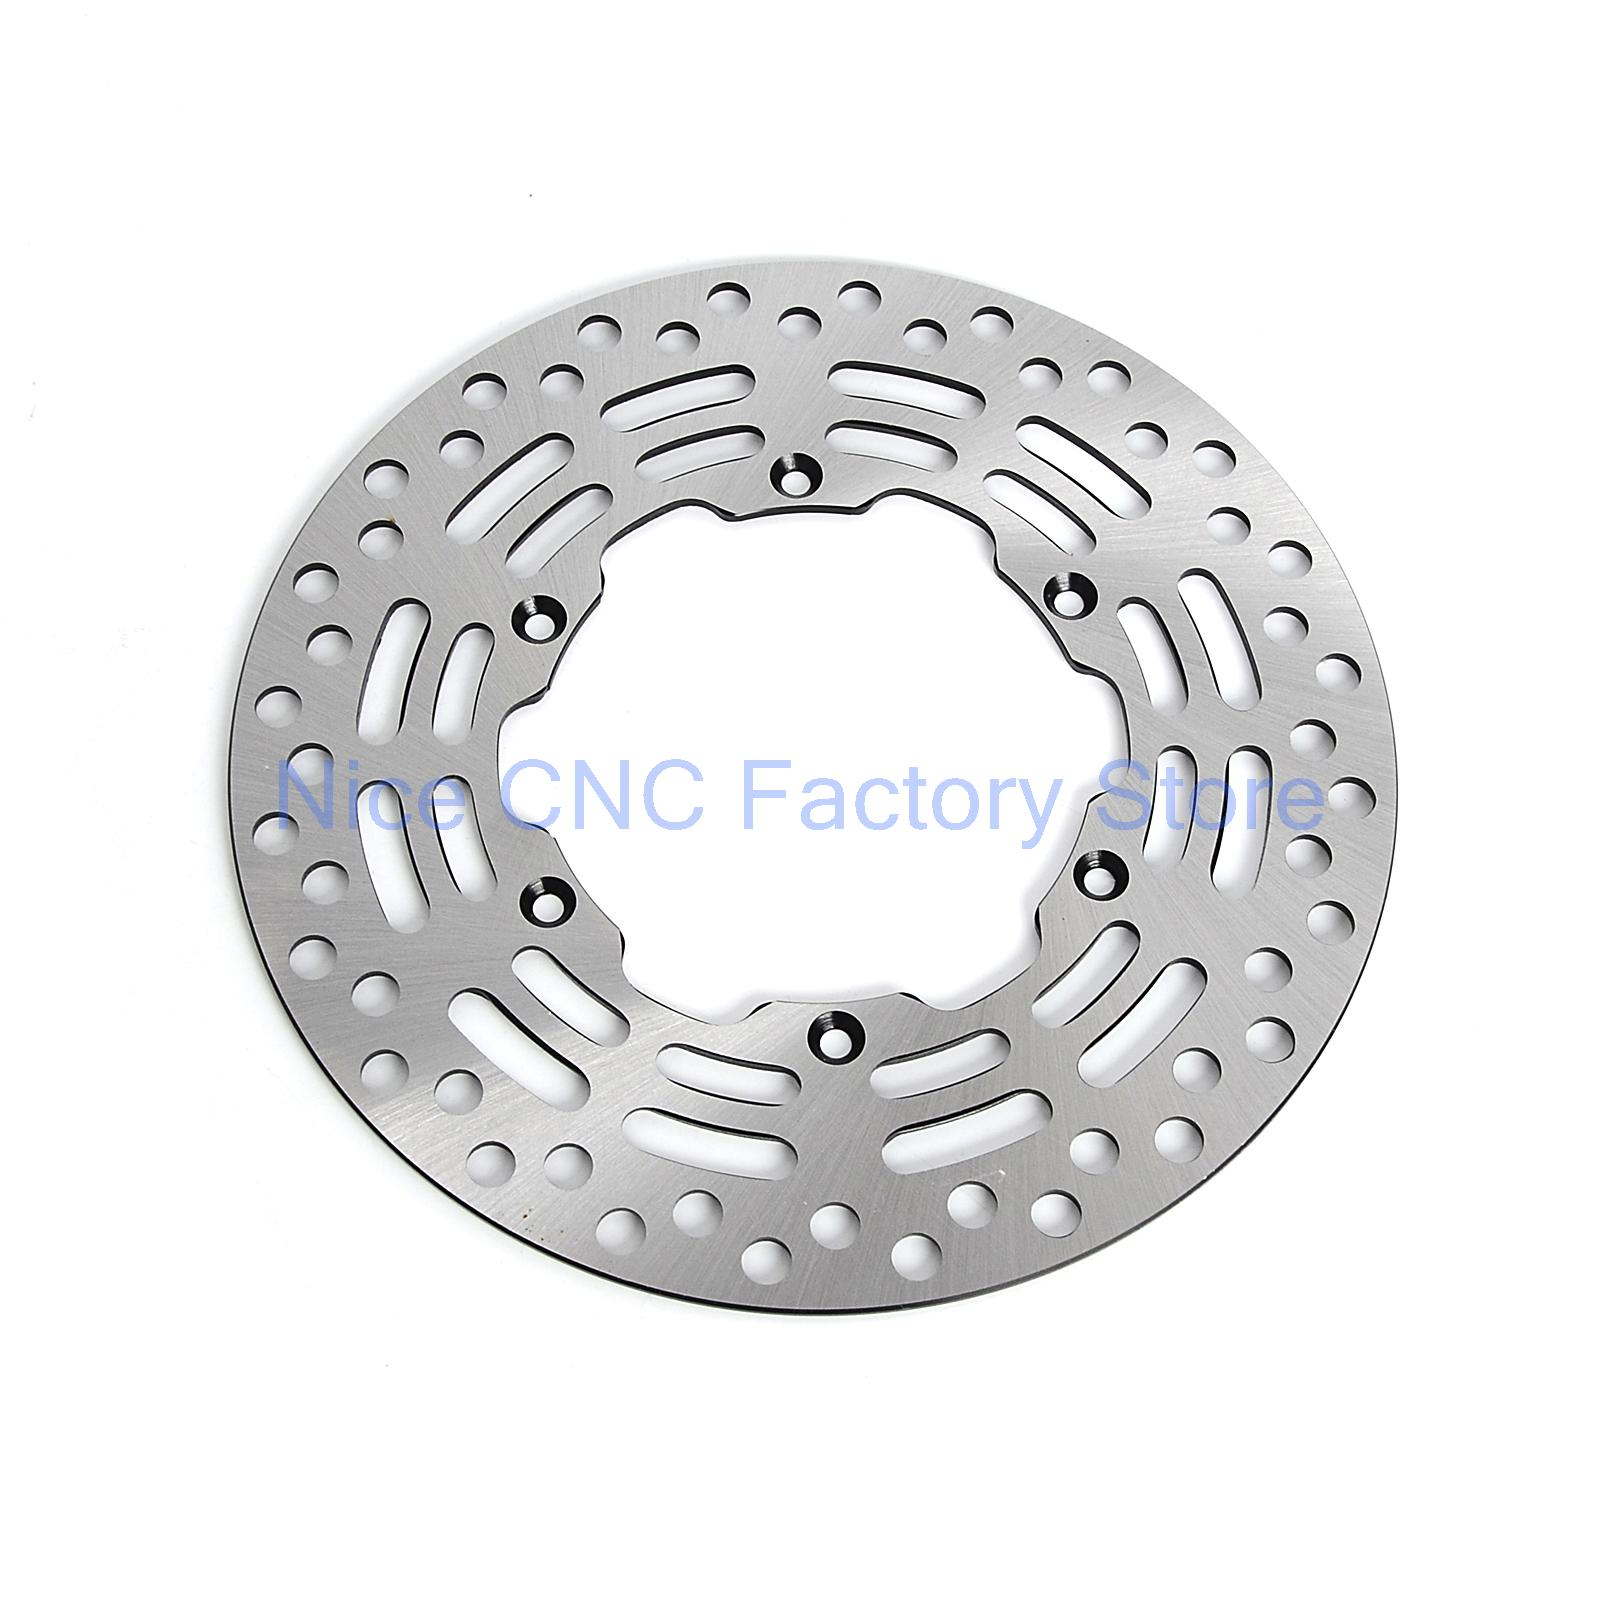 Motorcycle Front Rotor Brake Disc For Yamaha WR125 WR250 YZ125 YZ250 YZ250F  WR450F YZ450F YZF426 WRF426 4-T NEW high quality 270mm oversize front mx brake disc rotor for yamaha yz125 yz250 yz250f yz450f motorbike front mx brake disc